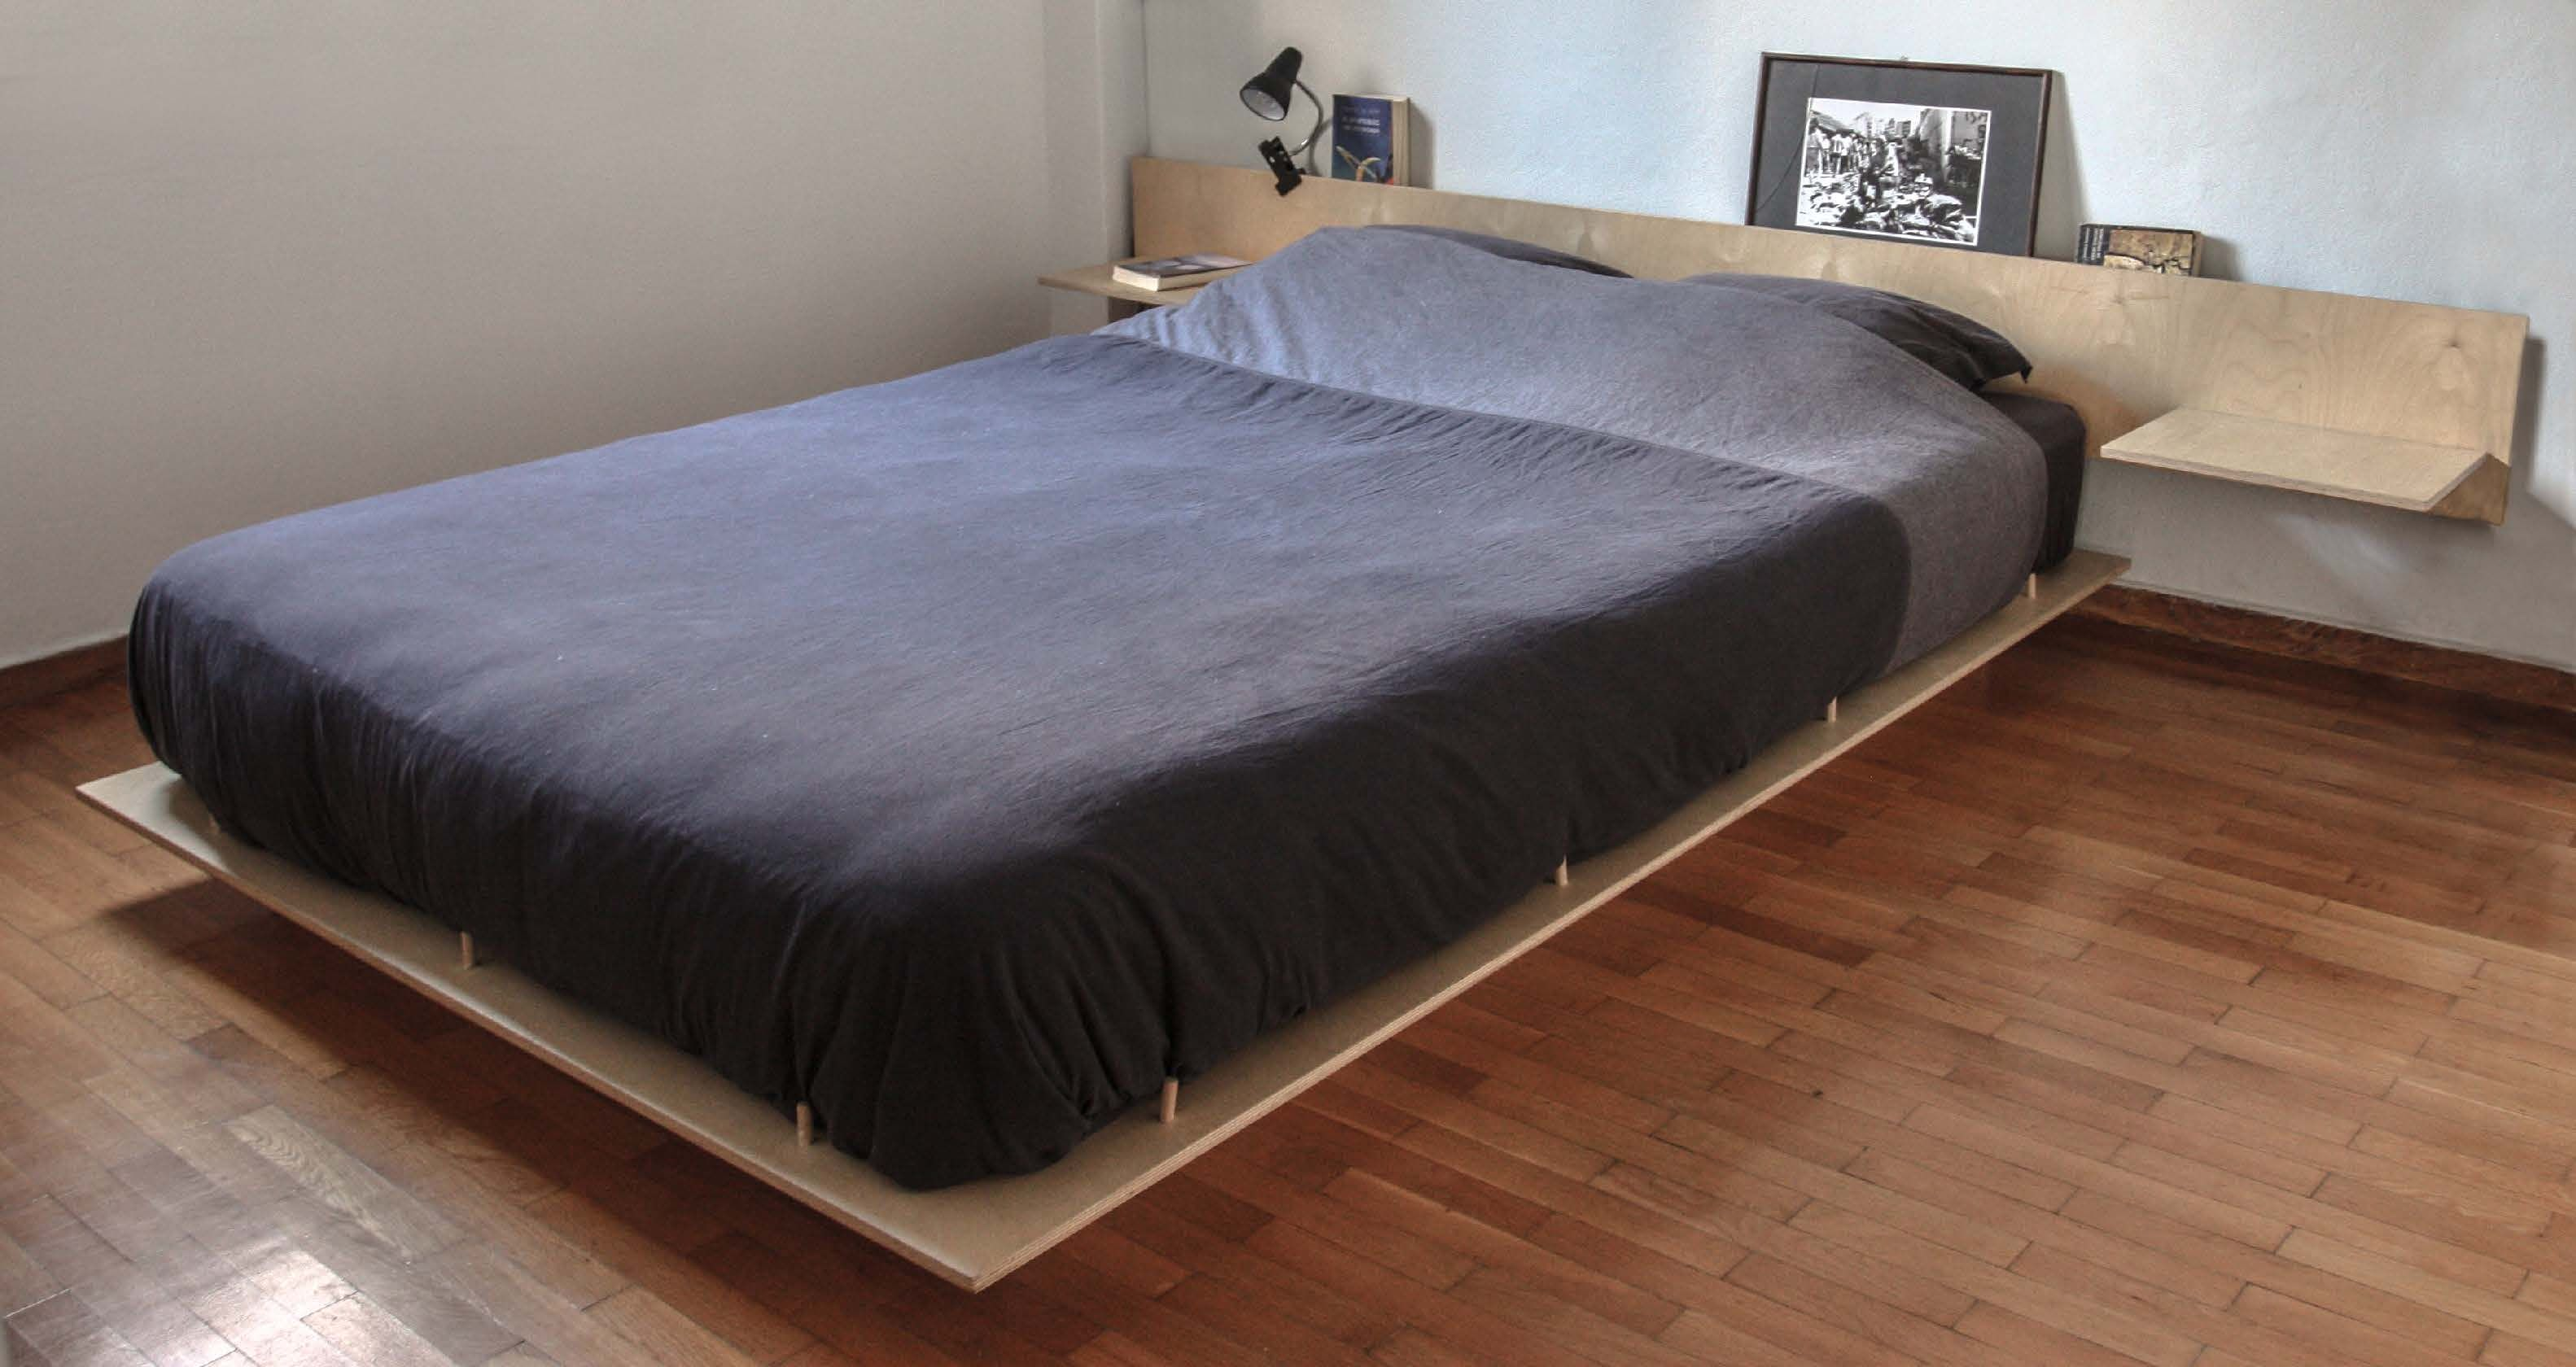 Plywood Floating Bed